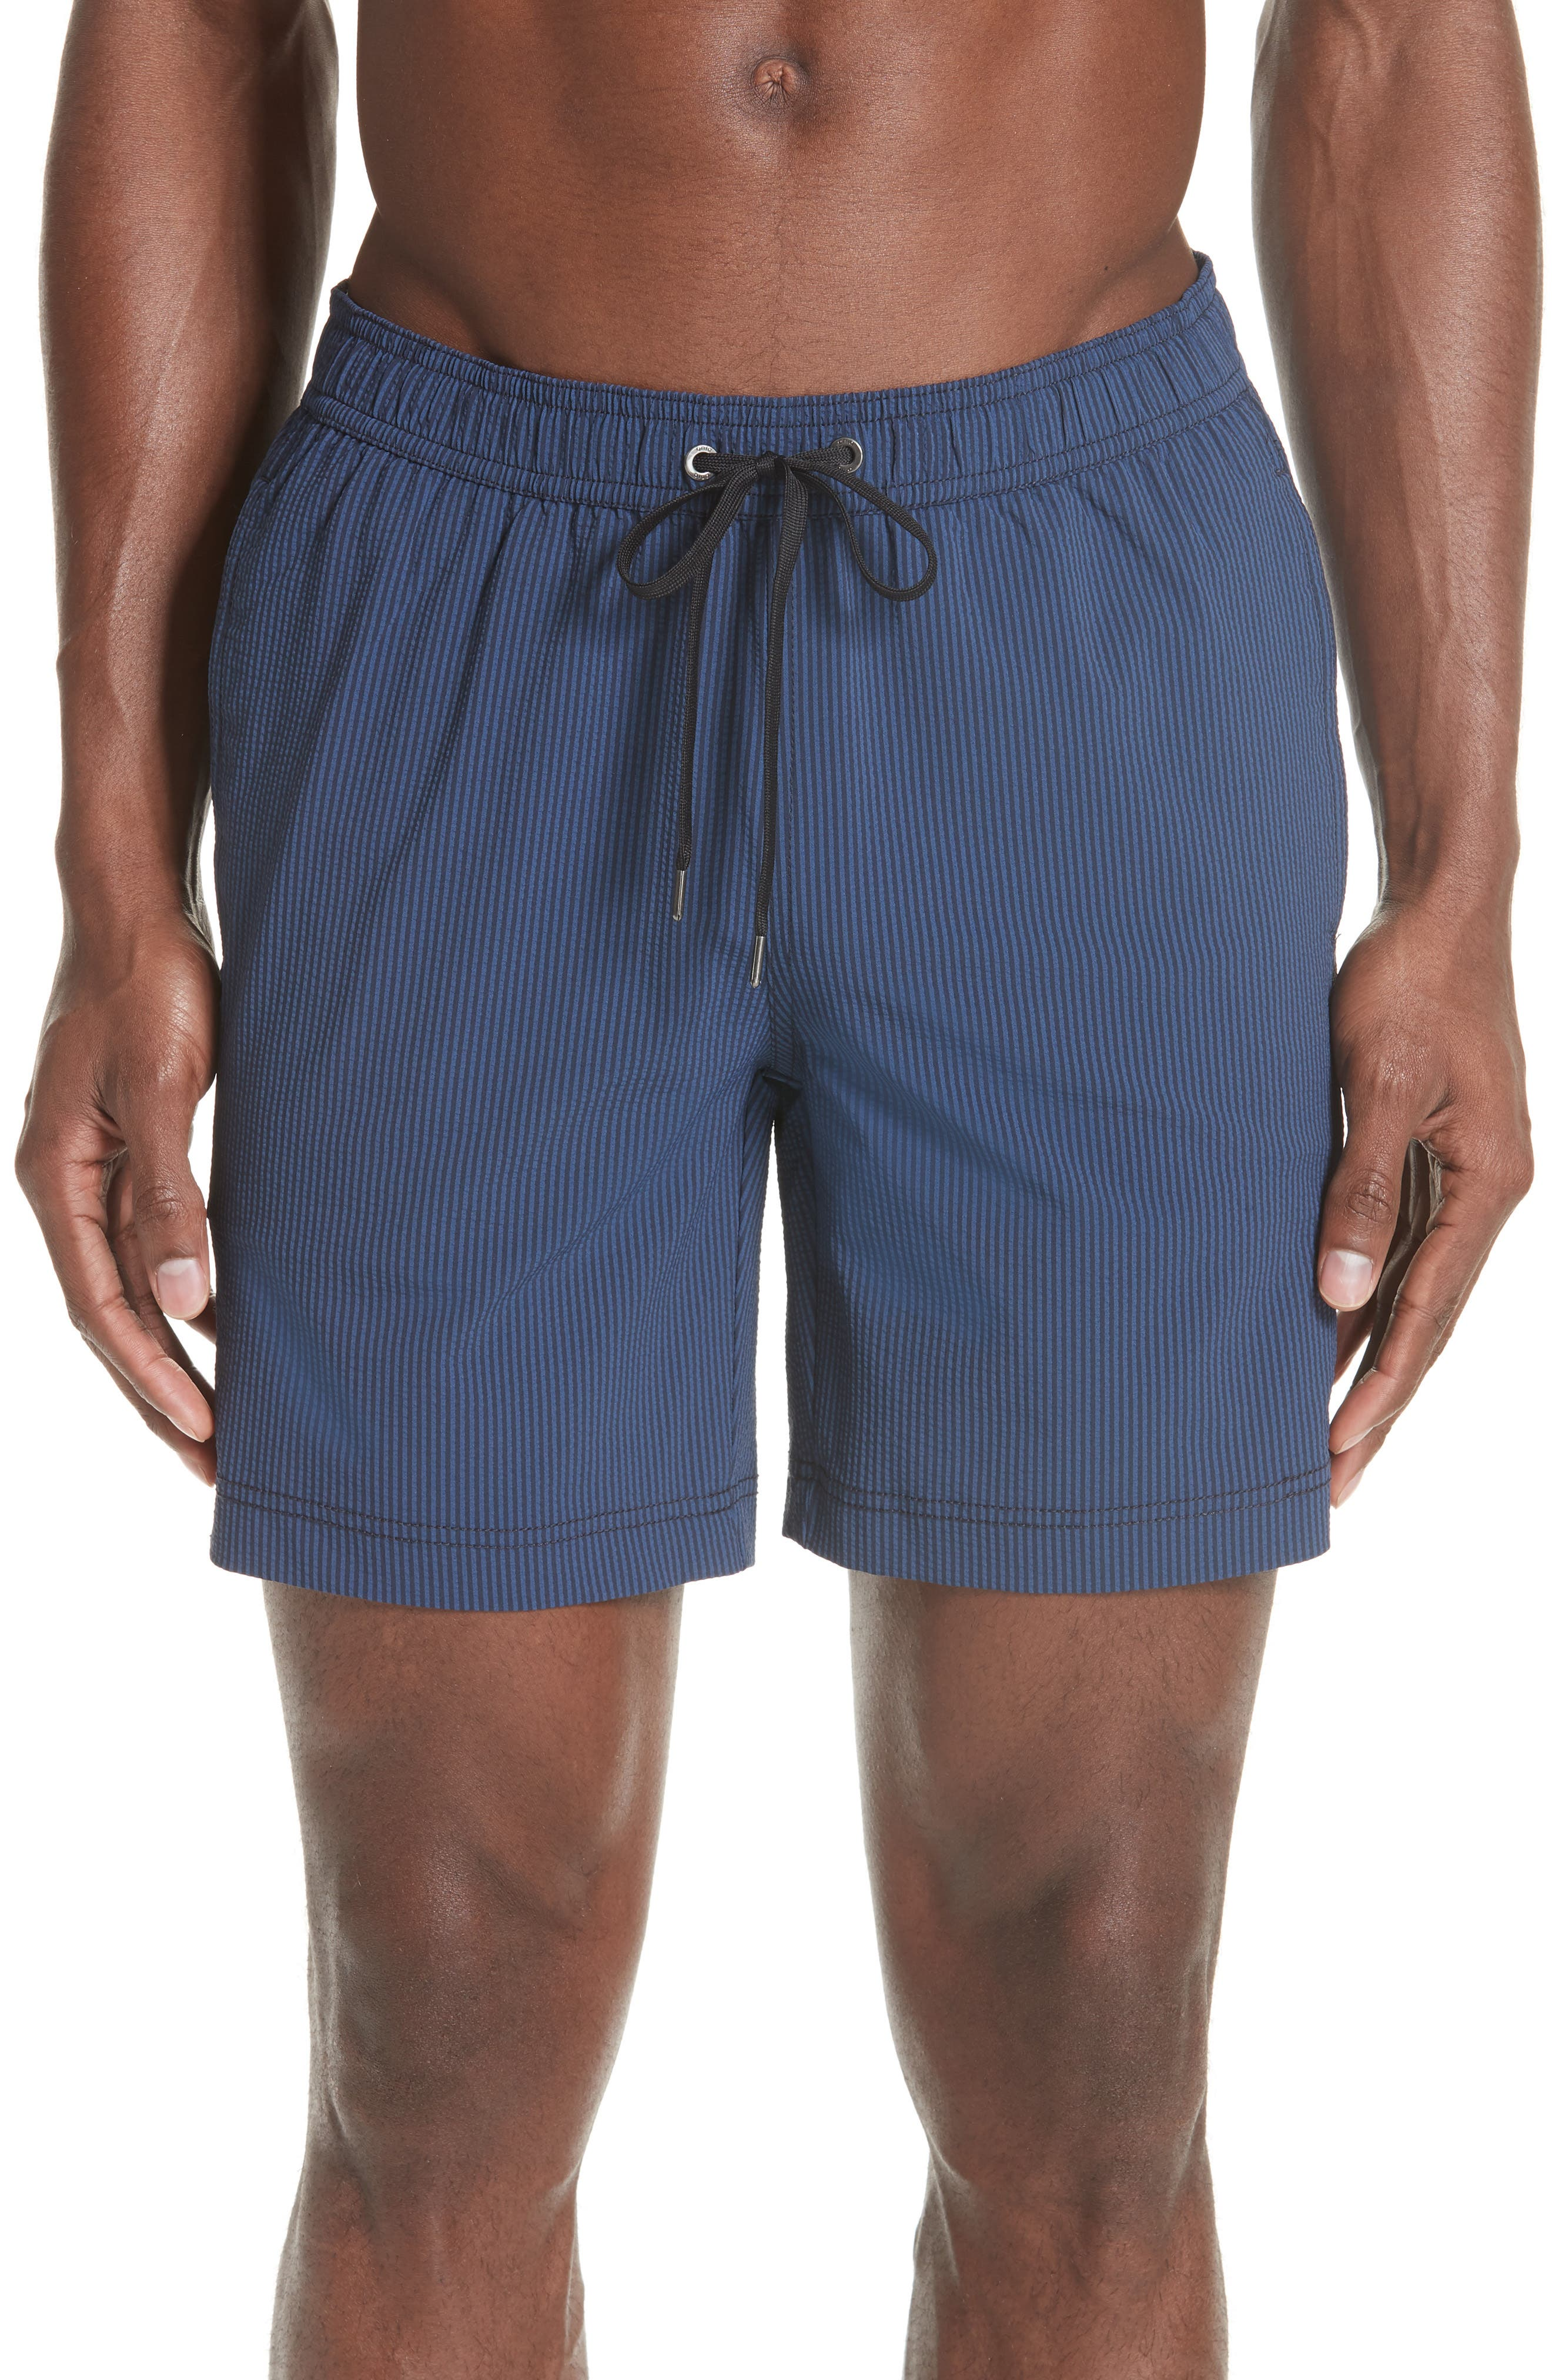 Charles Microstripe Swim Trunks,                         Main,                         color, DEEP NAVY ENSIGN BLUE